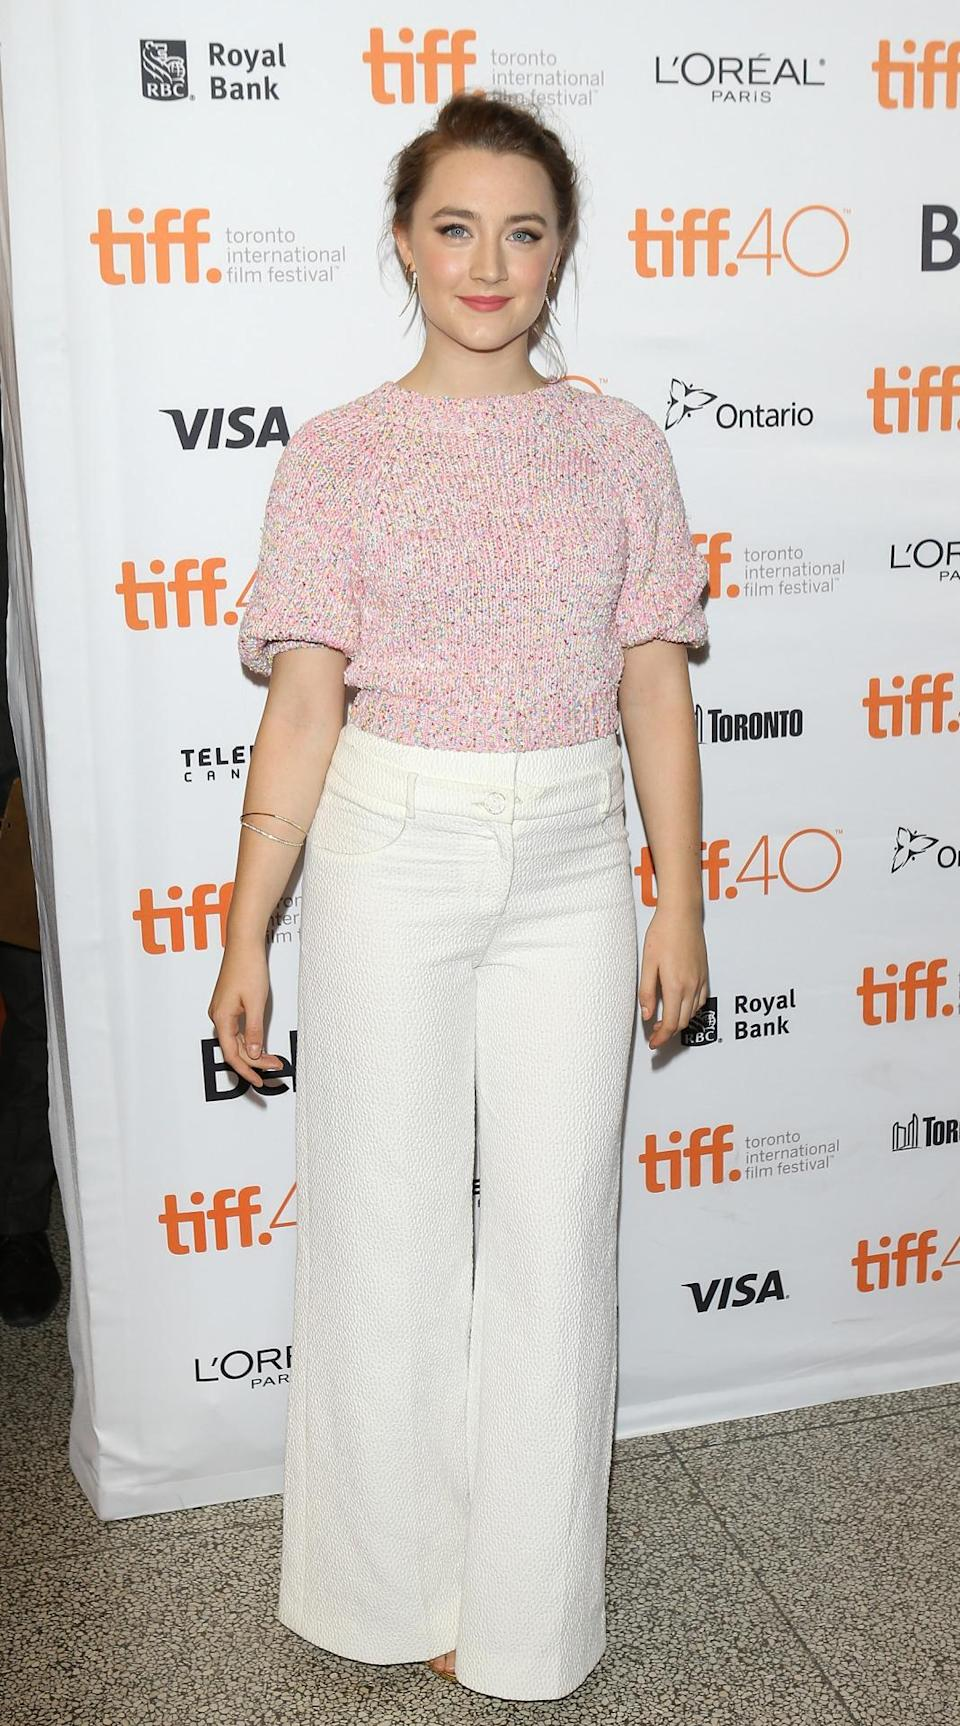 <p>Saoirse Ronan broke the white after Labor Day rule in the best way wearing white wide-legged pants with a pink sweater from Chanel's Resort 2016 collection.</p>